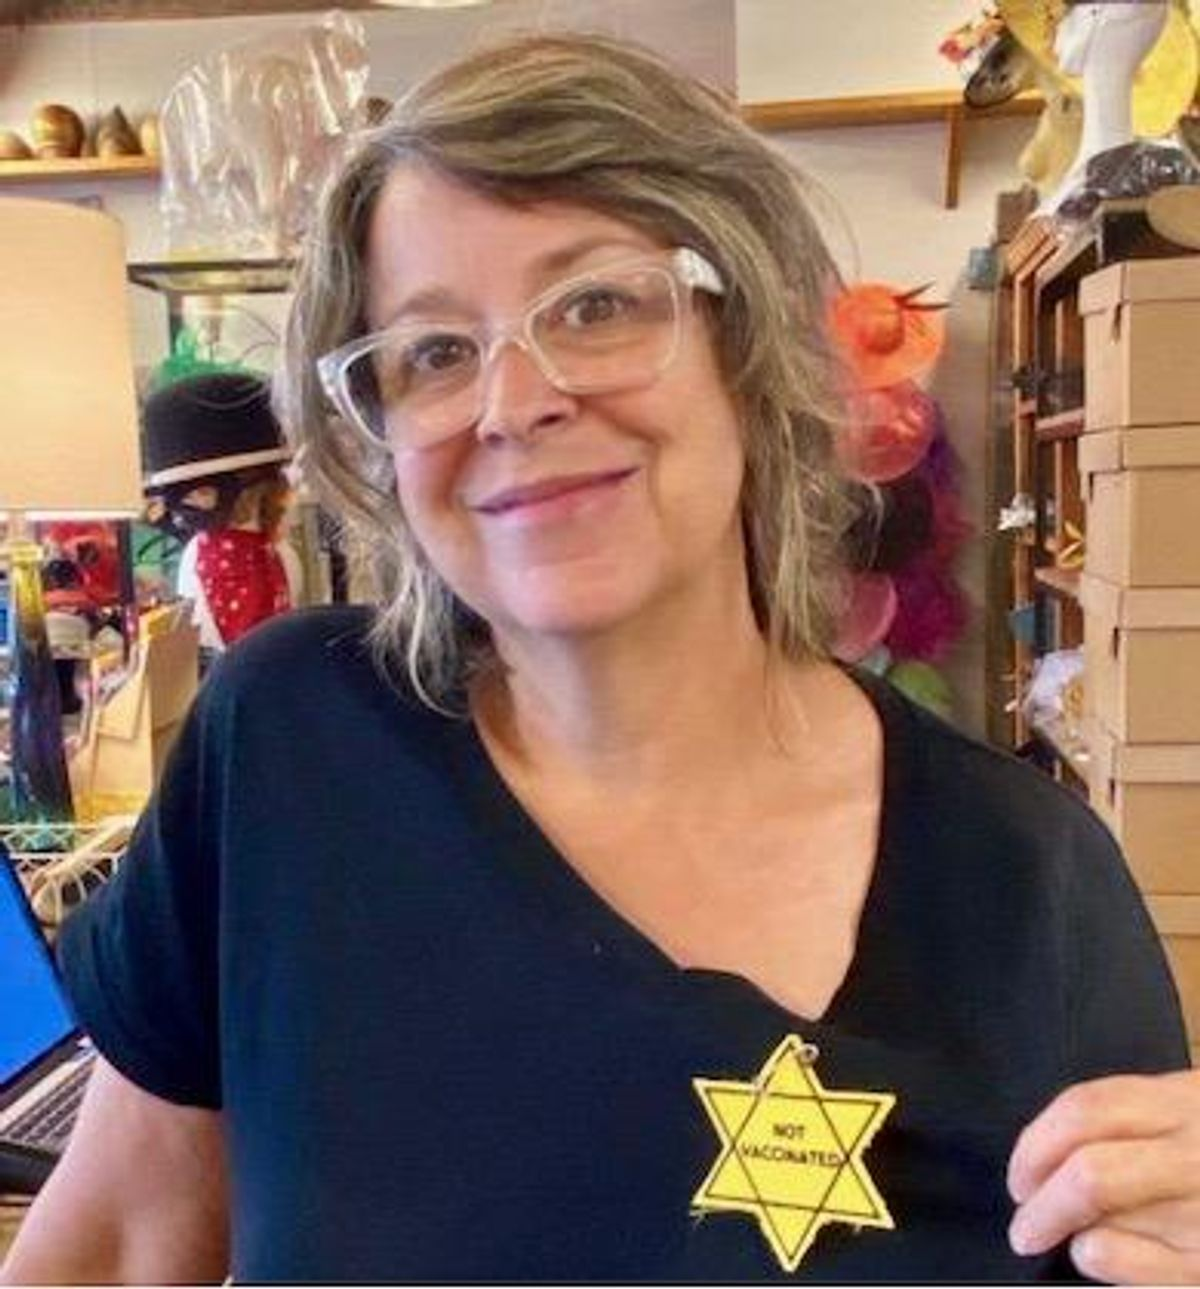 Tennessee Hat Shop Under Fire for Promoting 'Not Vaccinated' Star of David Patch on Social Media